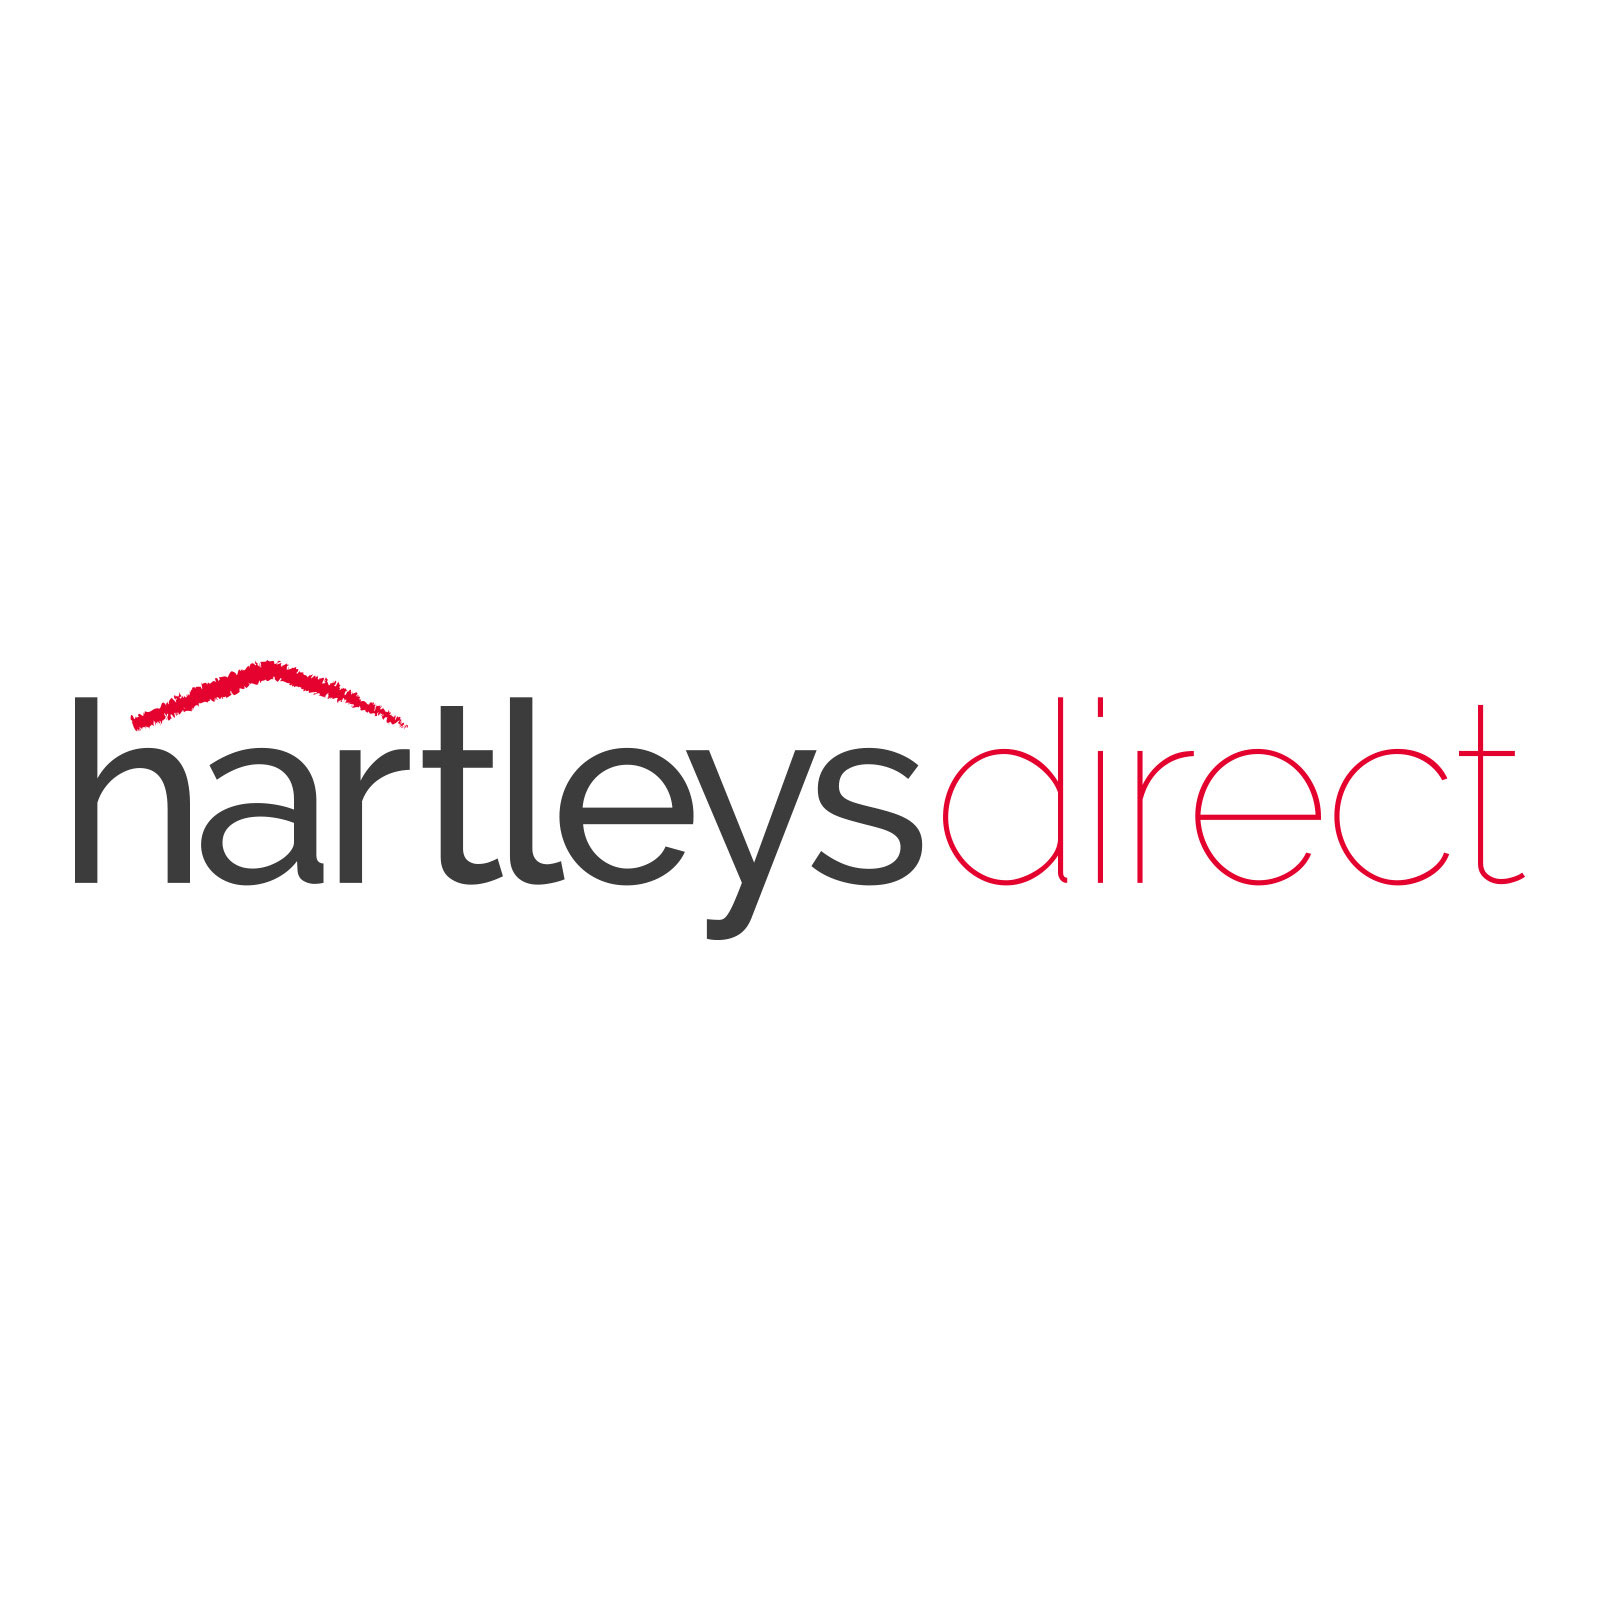 Hartleys-2x2-Seagrass-Unit.jpg